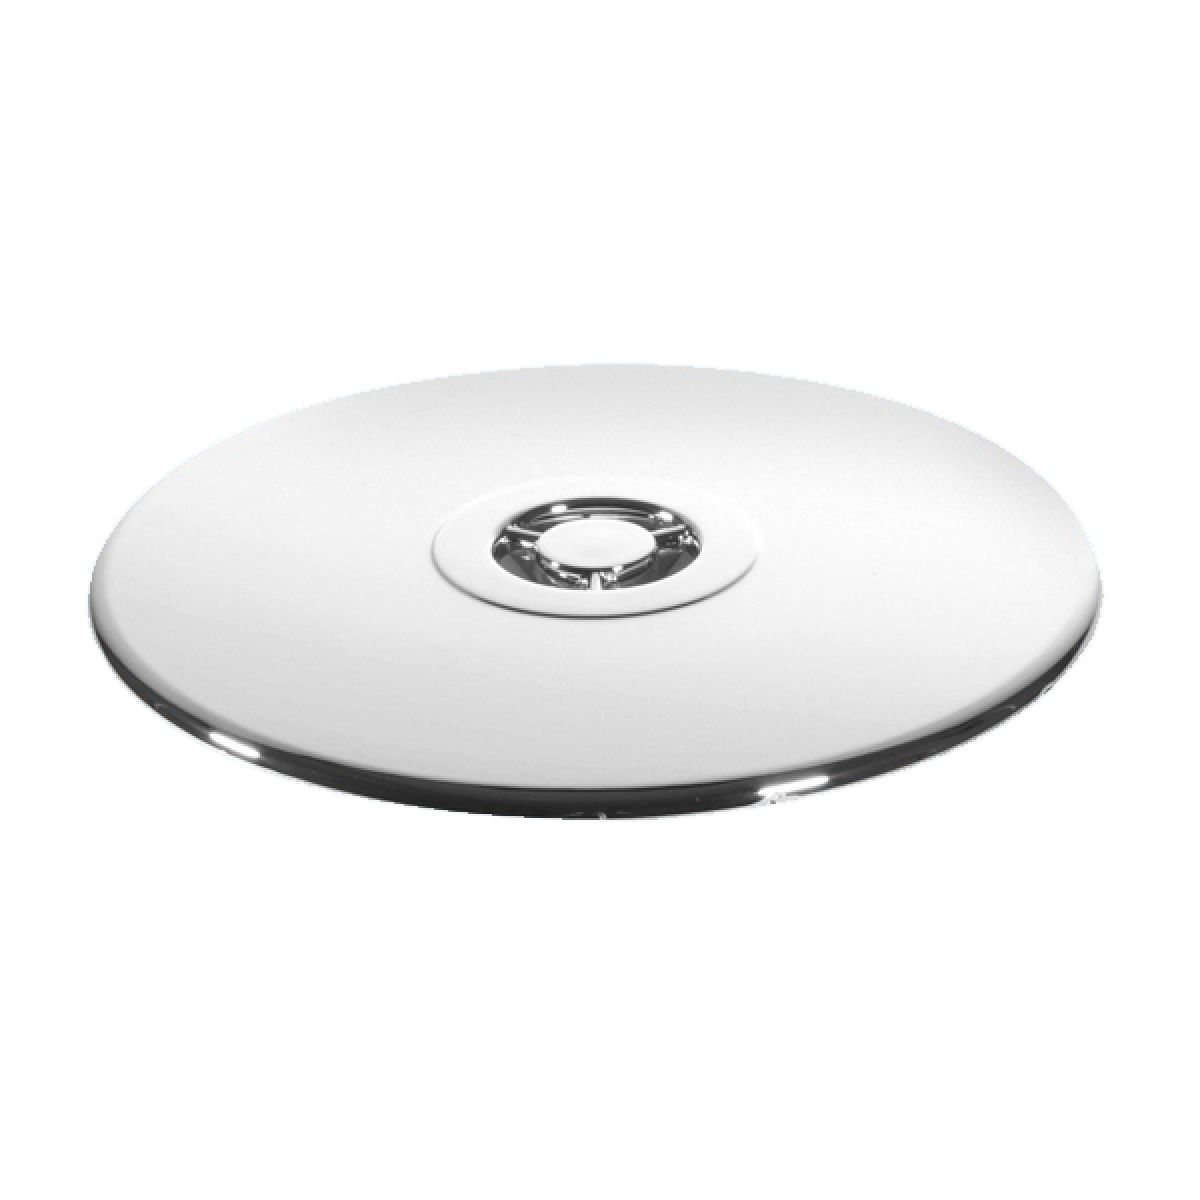 McAlpine 113mm Chrome Plated Plastic Flange with Dip Tube